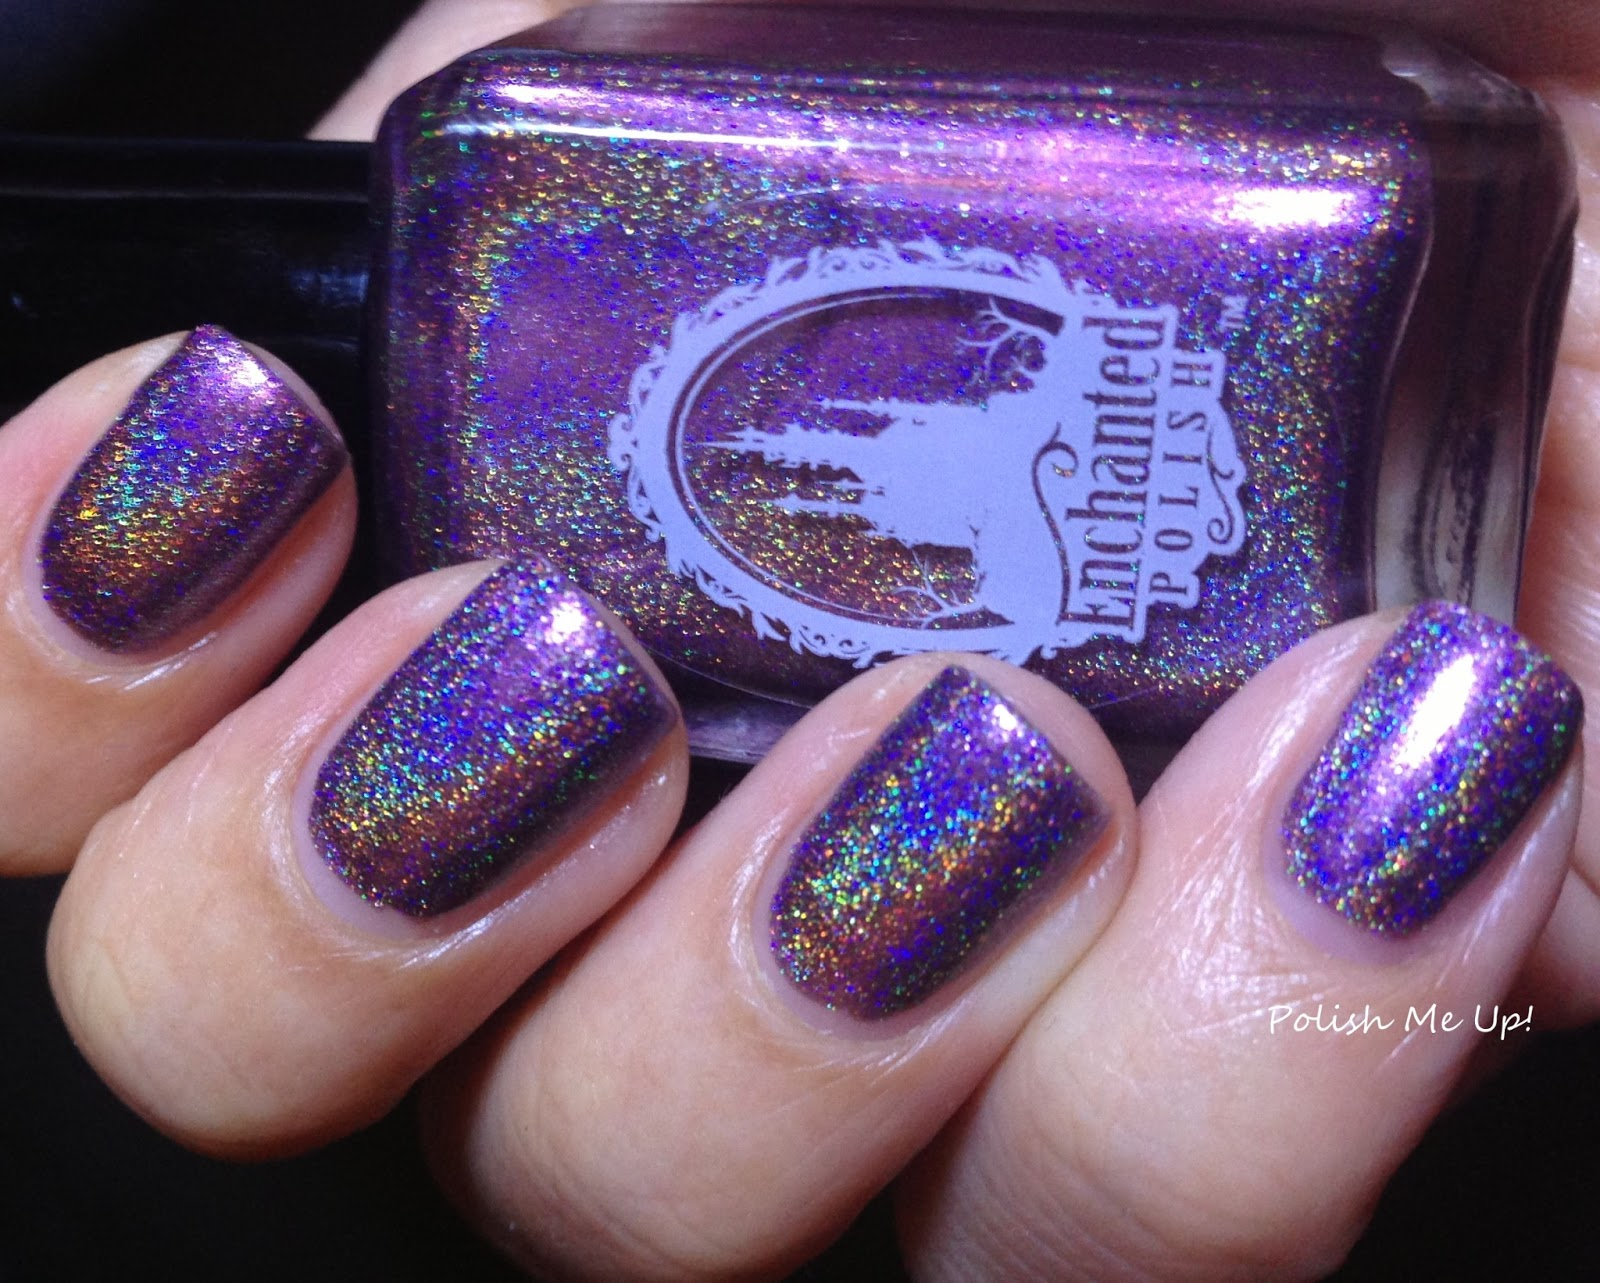 ... Up!: Enchanted Polish: Dance of the Sugar Plum and Bruised Nutcracker